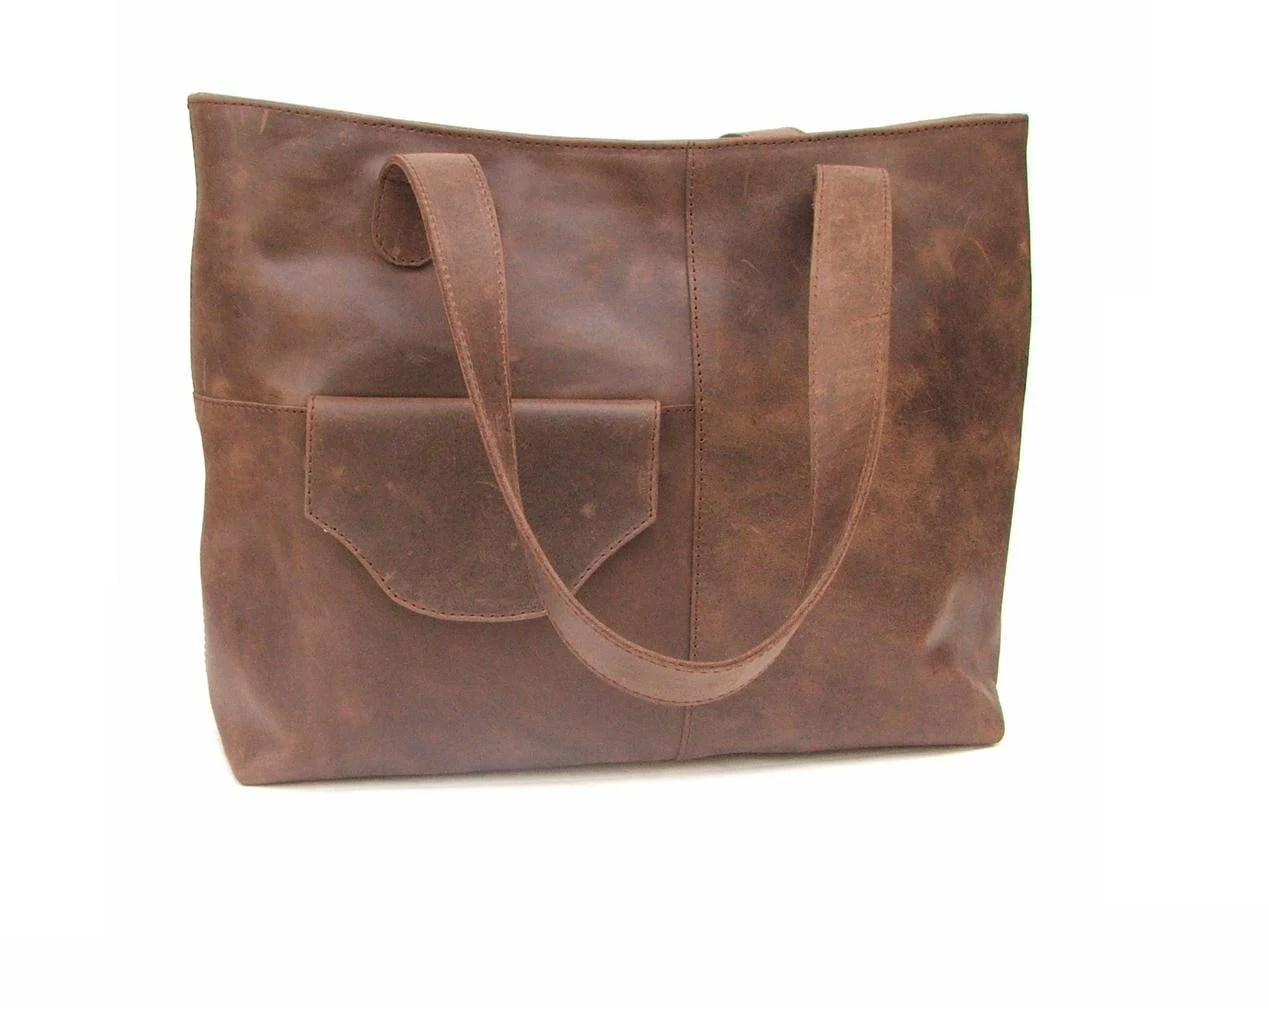 Leather bag Market  bag women bag Satchel leather bag handbag tote bag brown bag